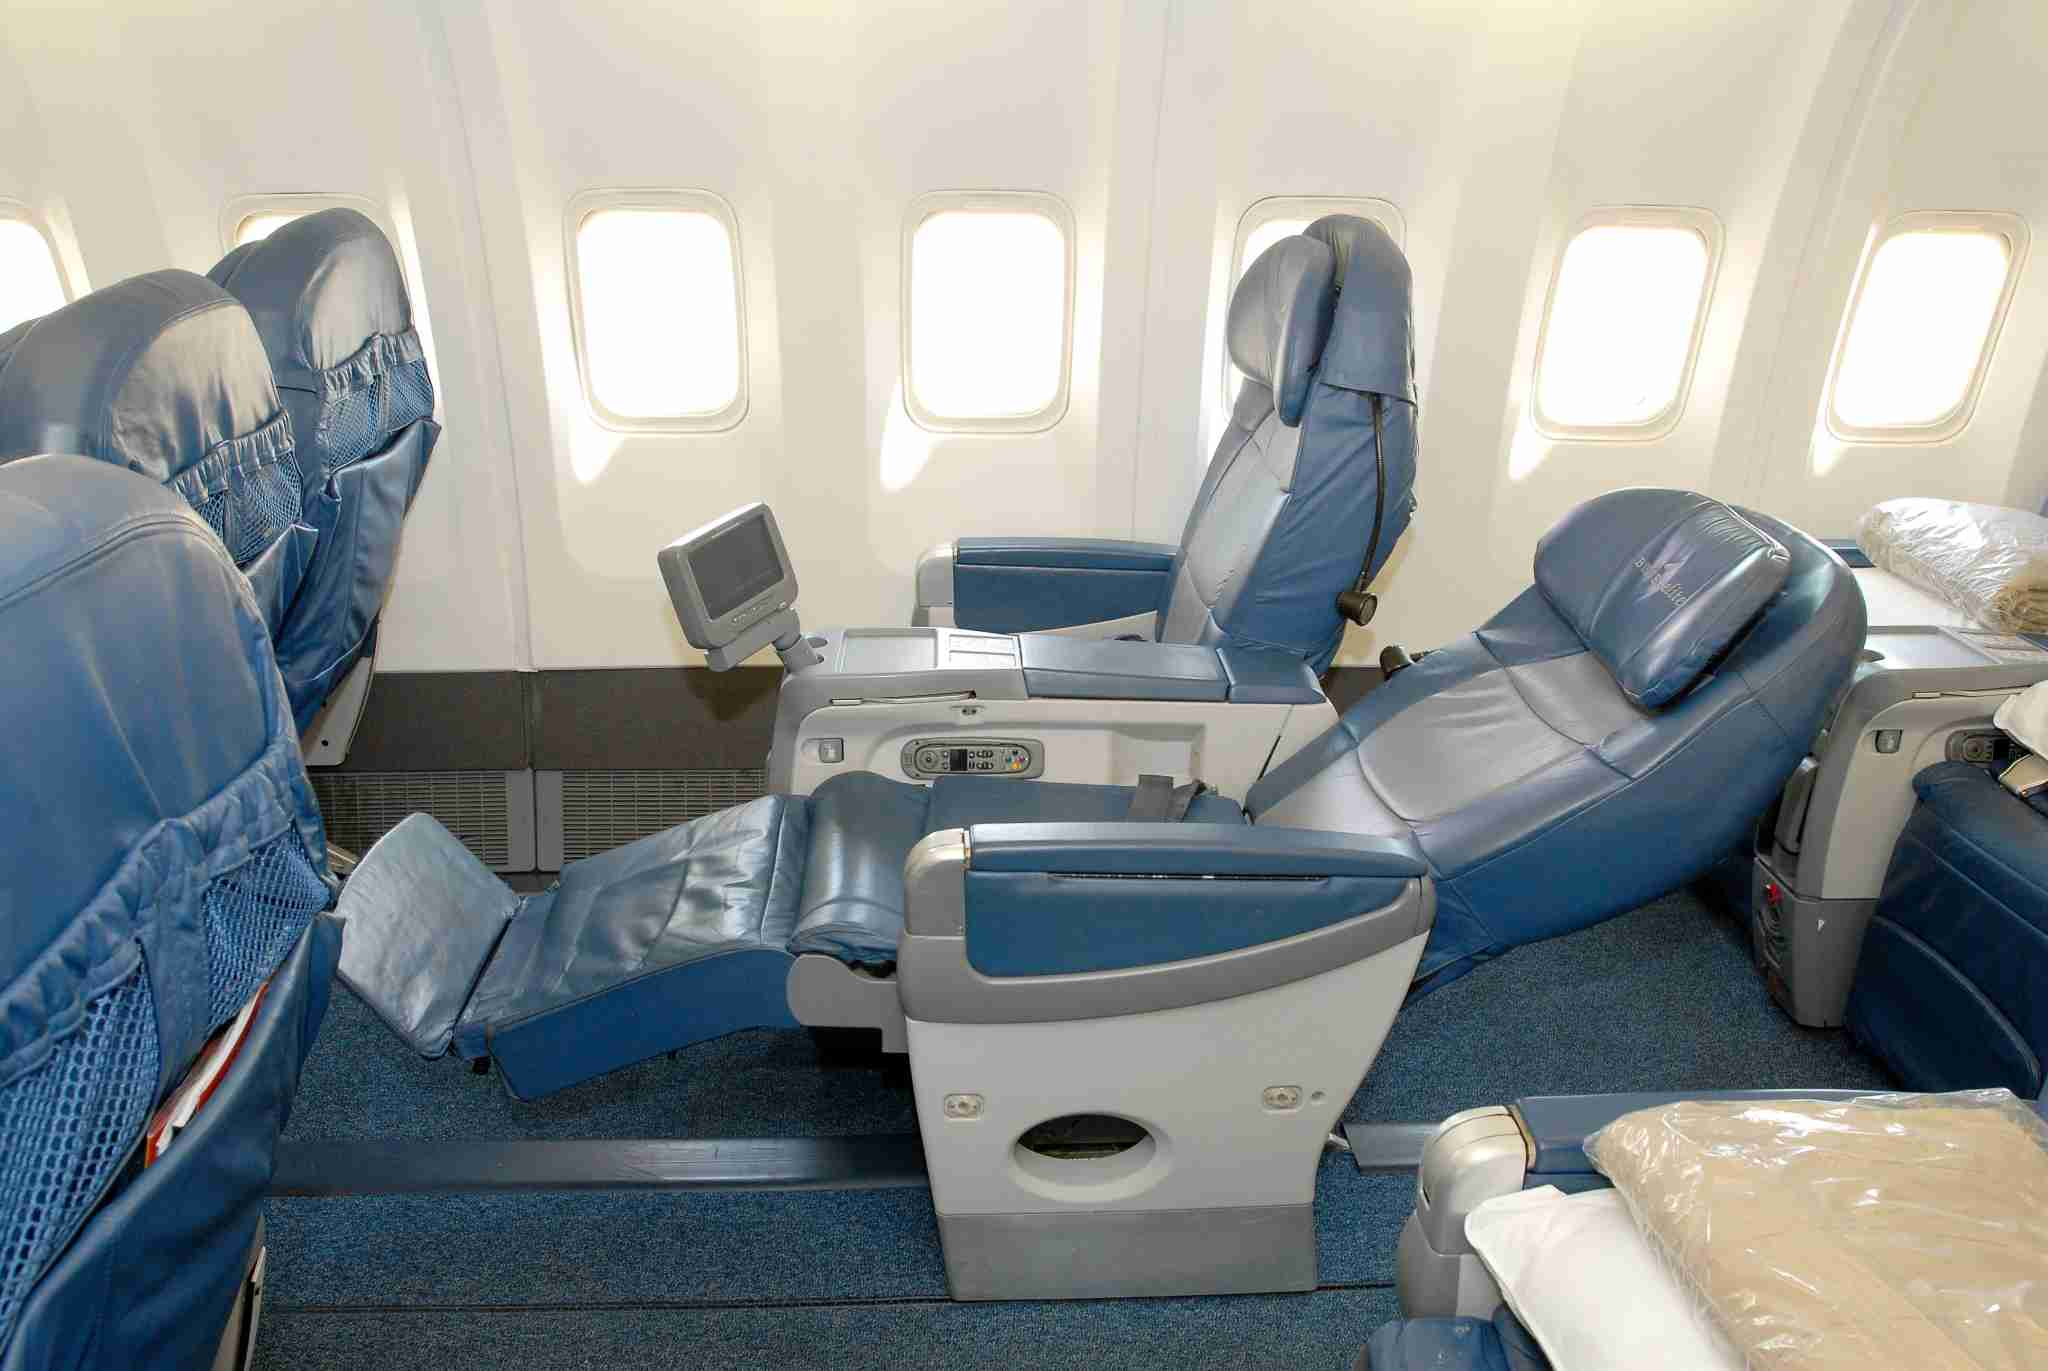 Sprawling reclnier chairs could still be found on U.S. fleets into the early 2010s, but have since been replaced. Image courtesy of Delta Air Lines.